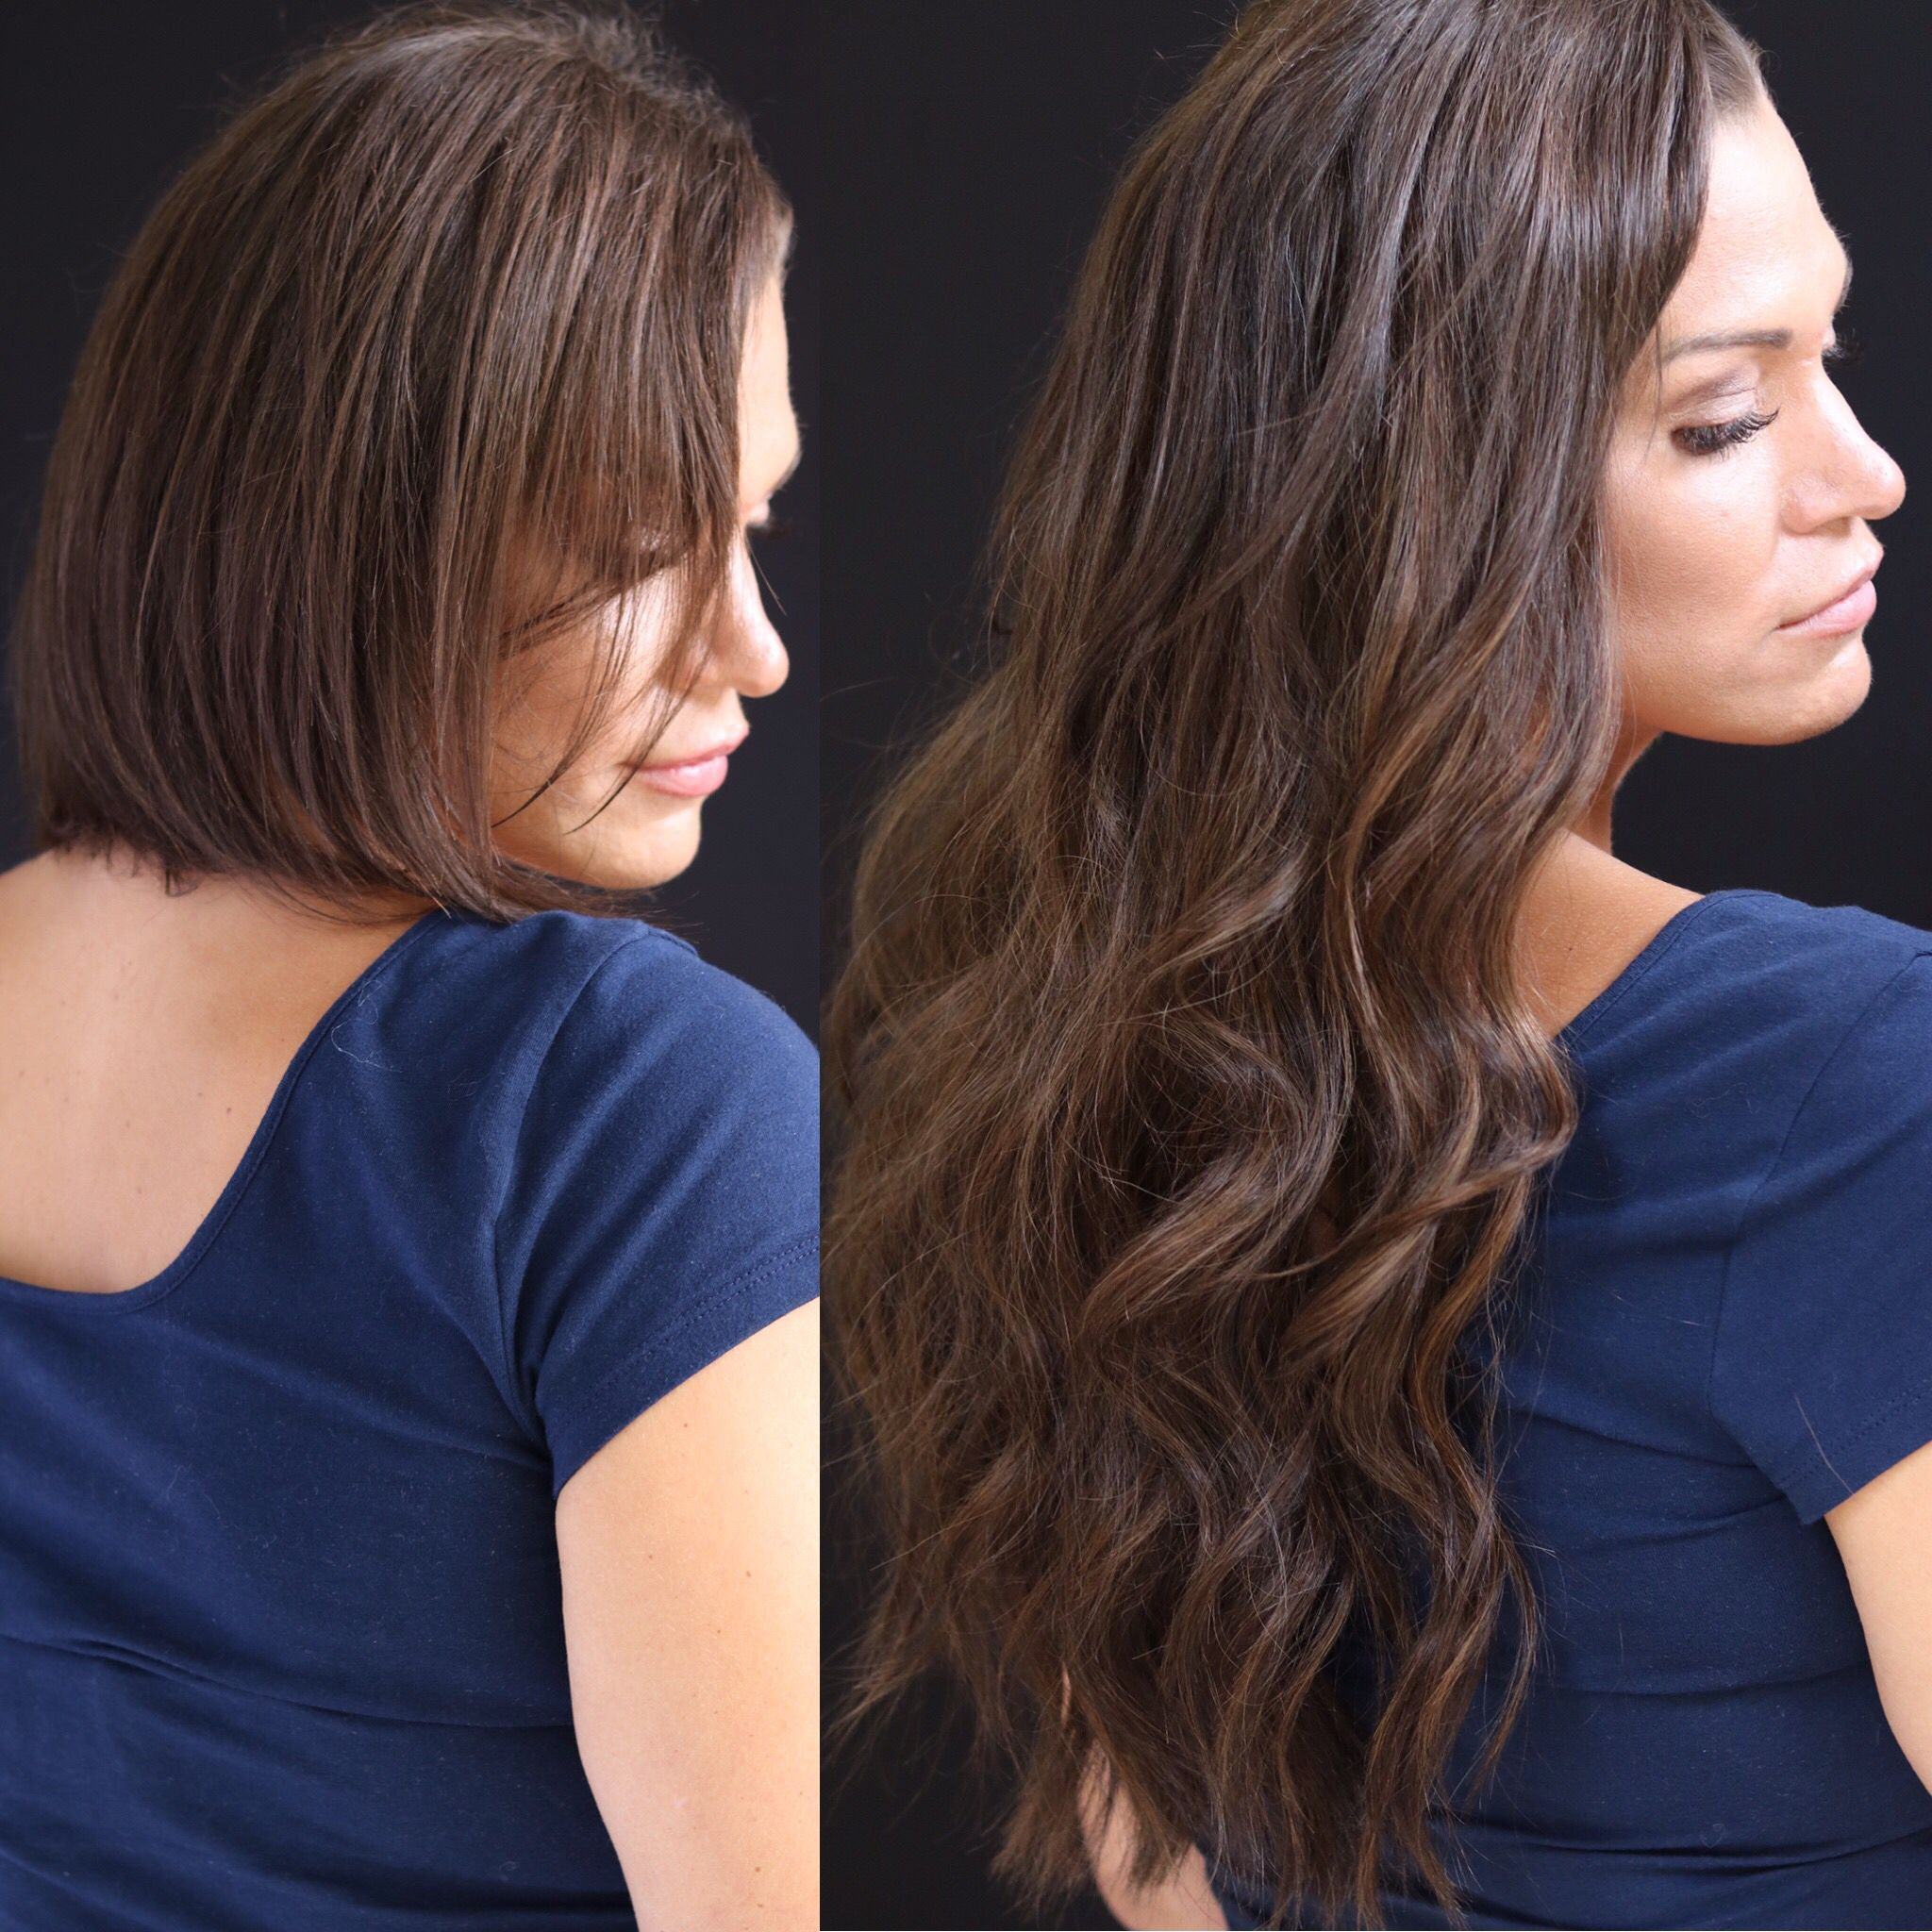 Hair Extensions for short, fine hair  Hair extensions for short